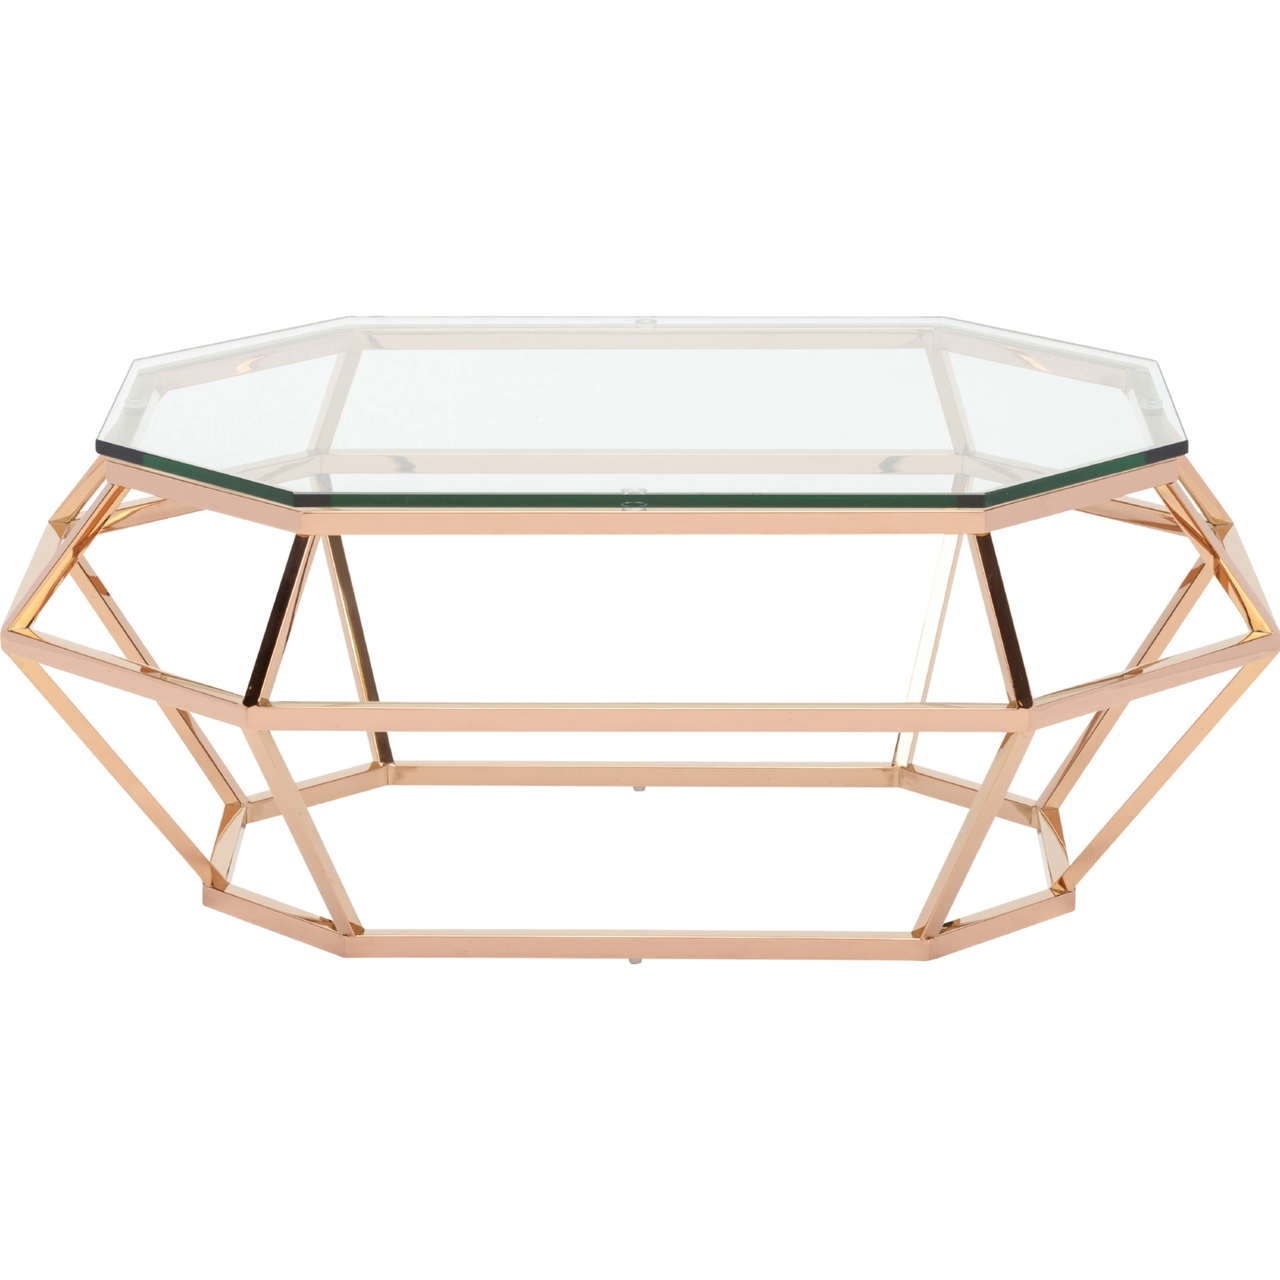 diamond rectangular coffee table by nuevo hgsx183 home and office furniture. Black Bedroom Furniture Sets. Home Design Ideas